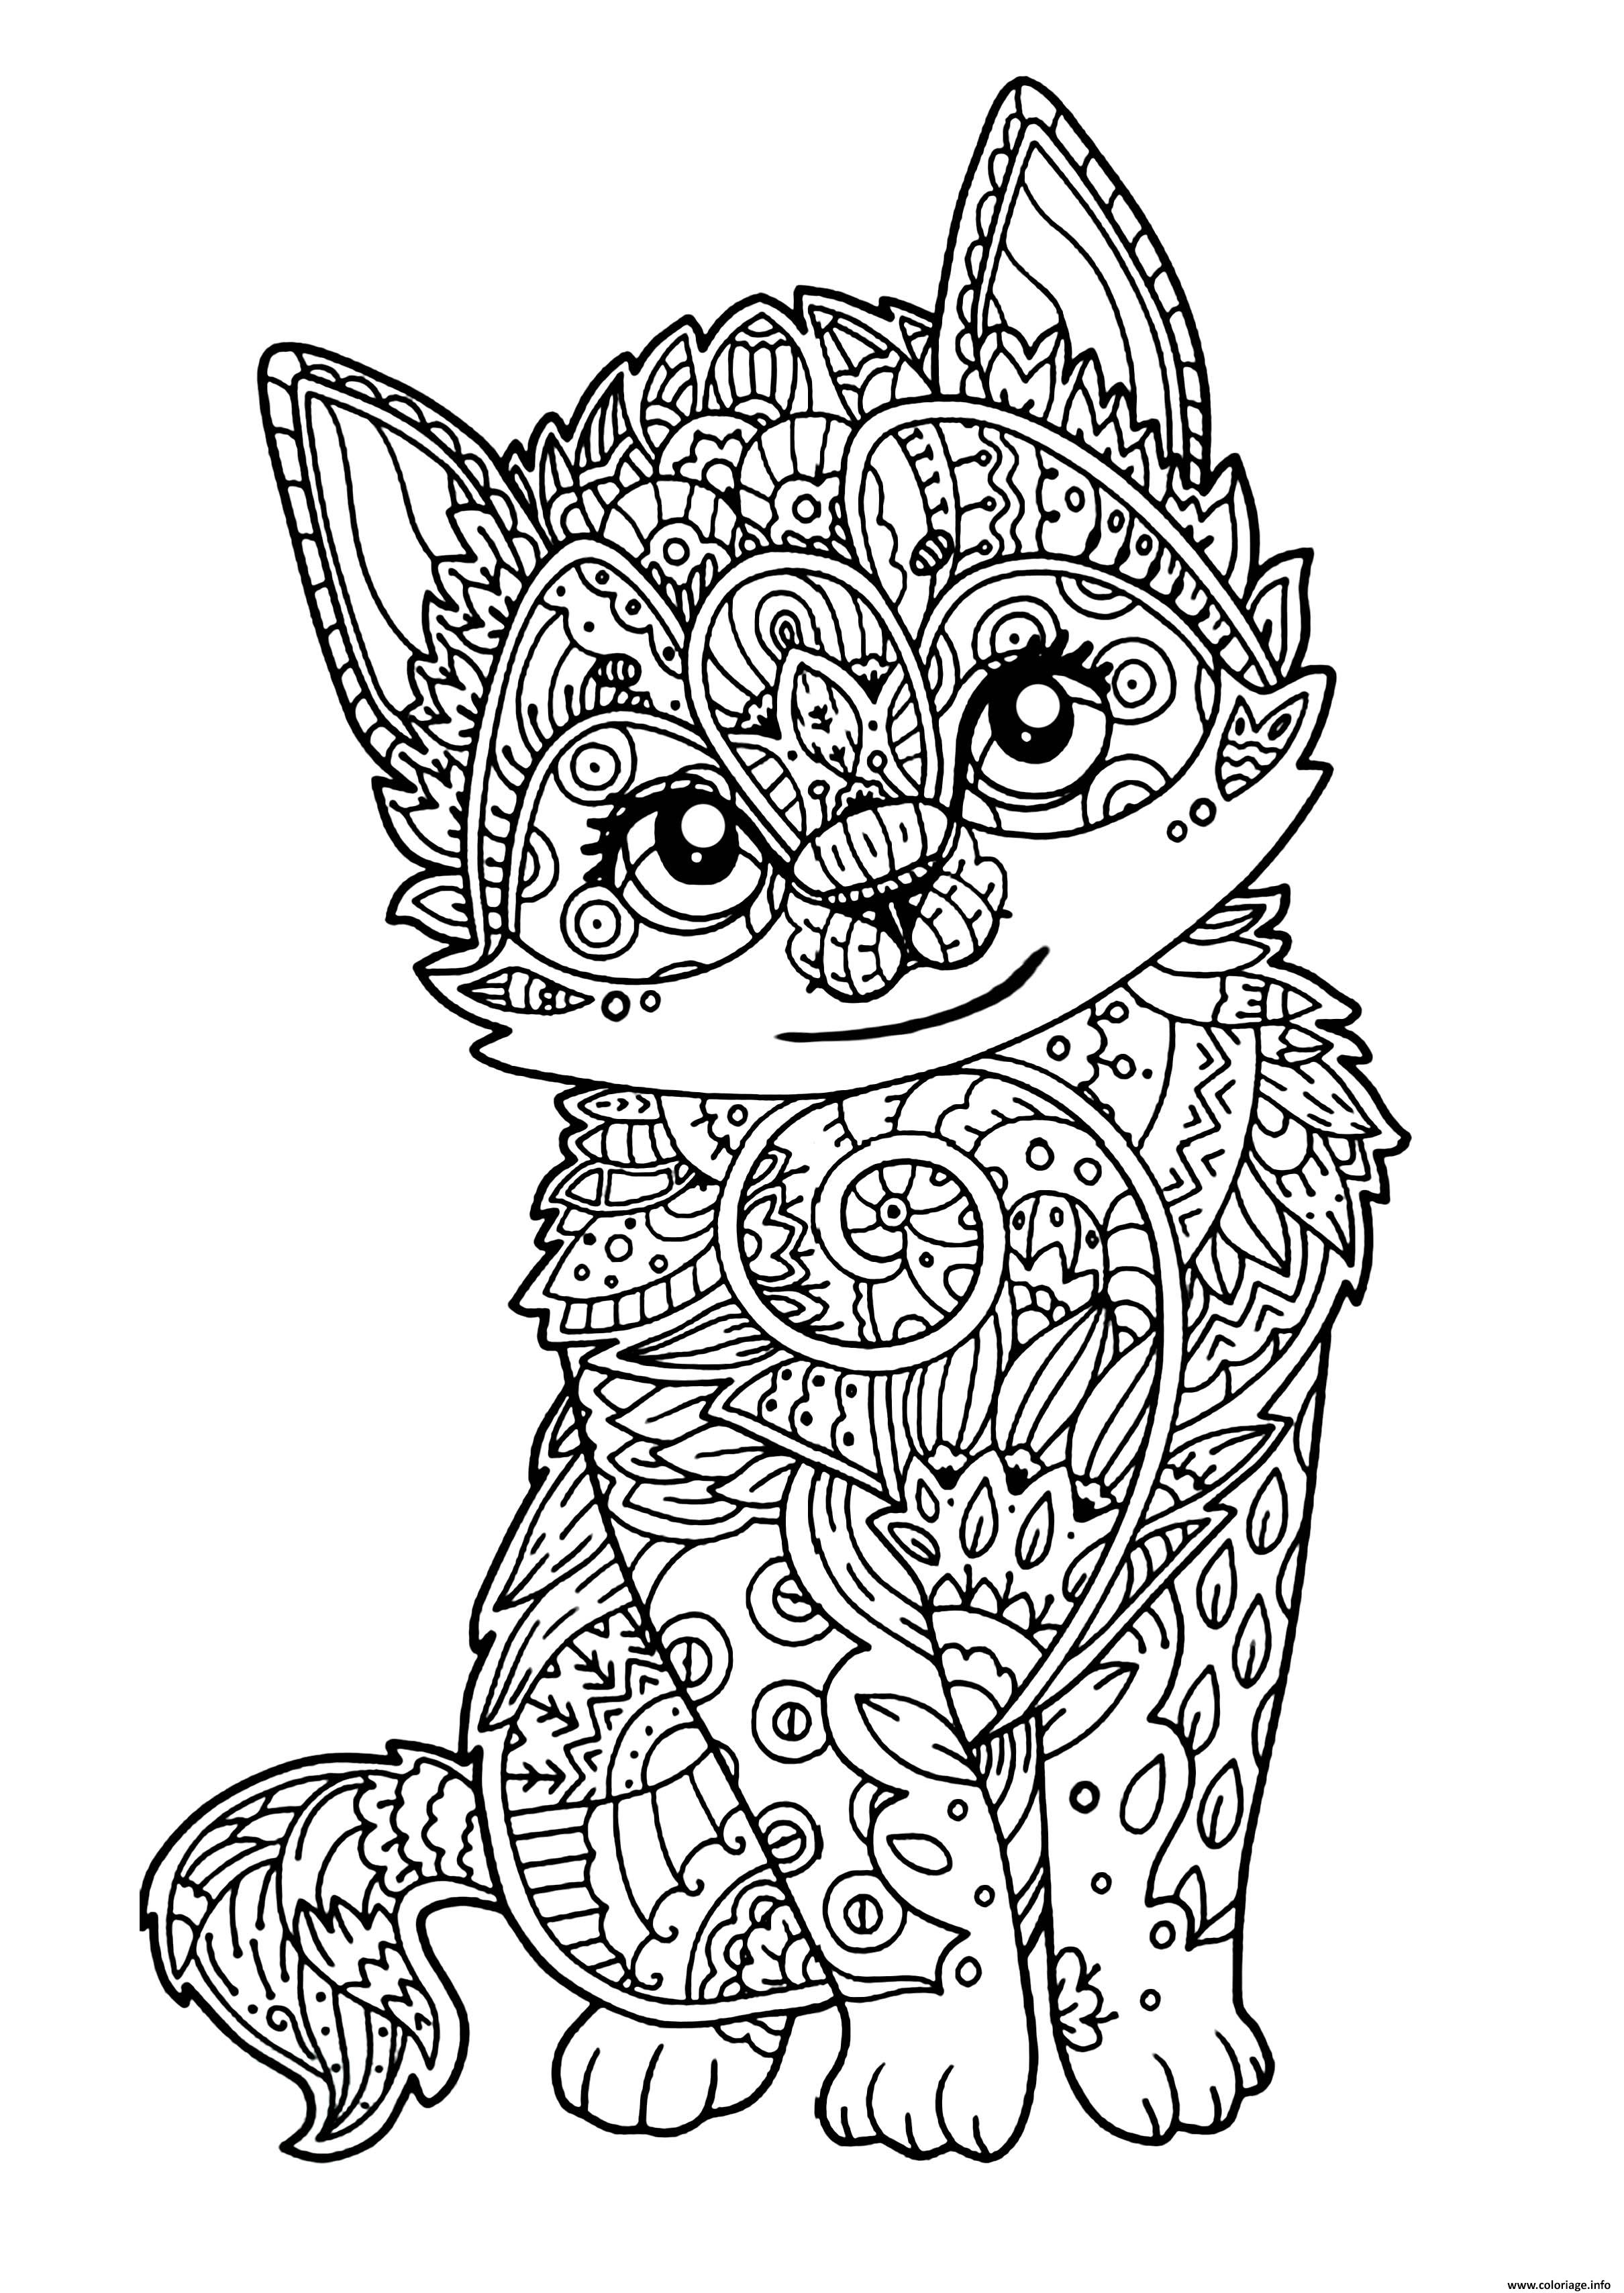 Coloriage chat mignon chaton adulte - Dessin gratuits ...